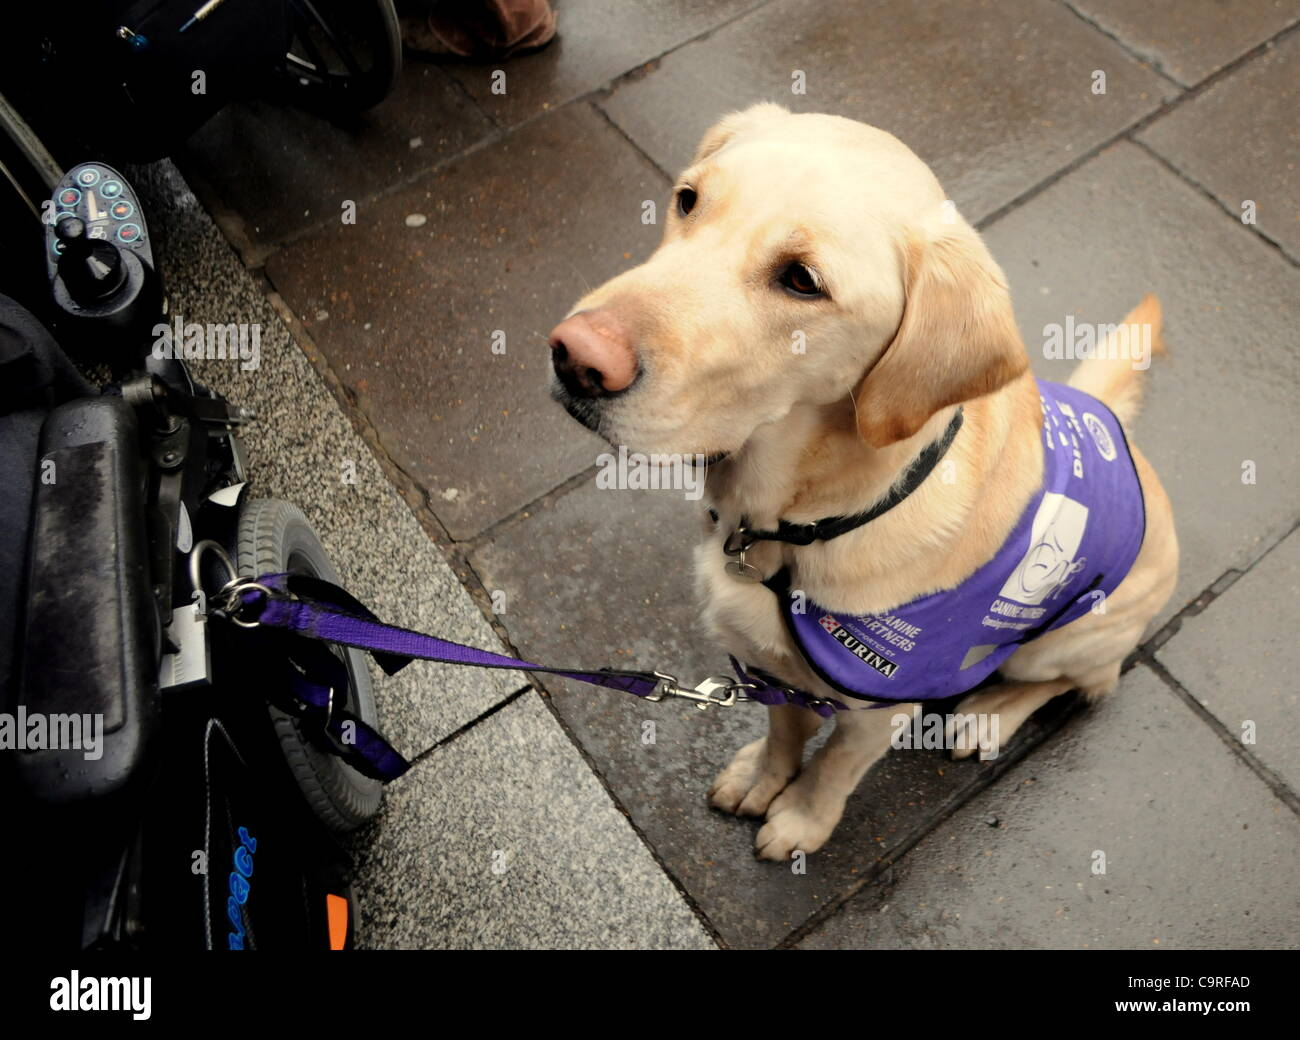 London Uk 13 02 12 A Labrador Assistance Dog Wears An Anti Cuts